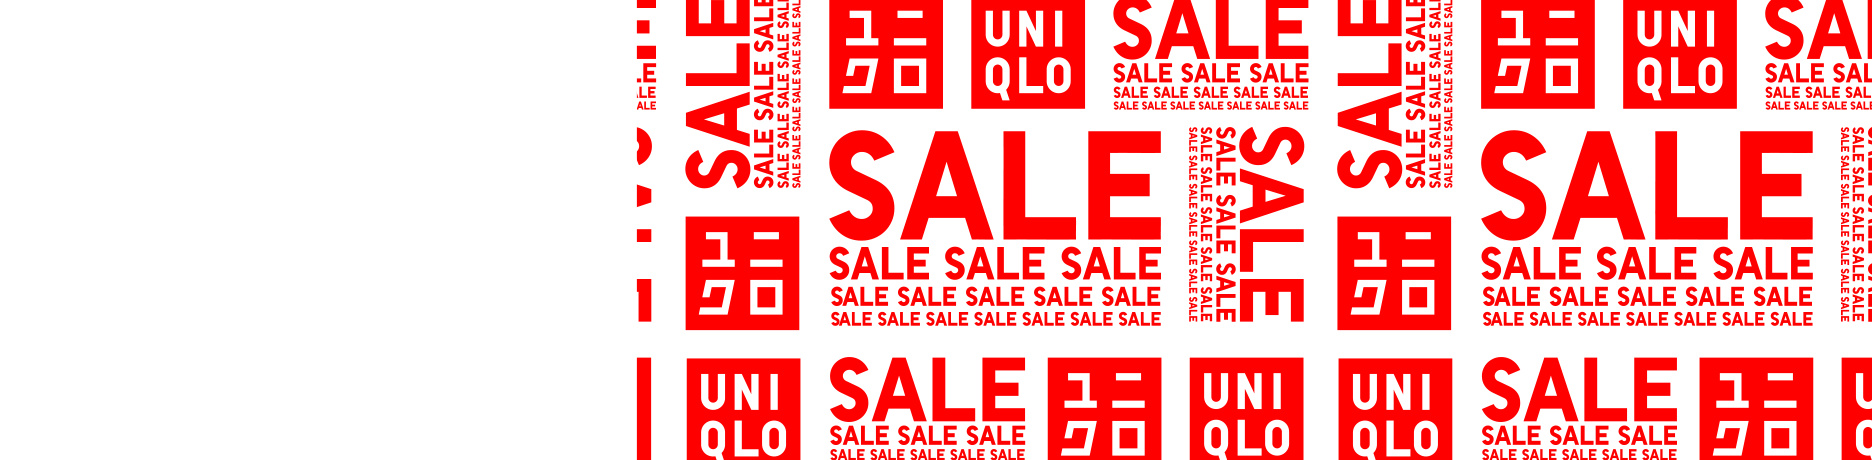 Women's Clothes Sale | Clearance For Women | UNIQLO UK